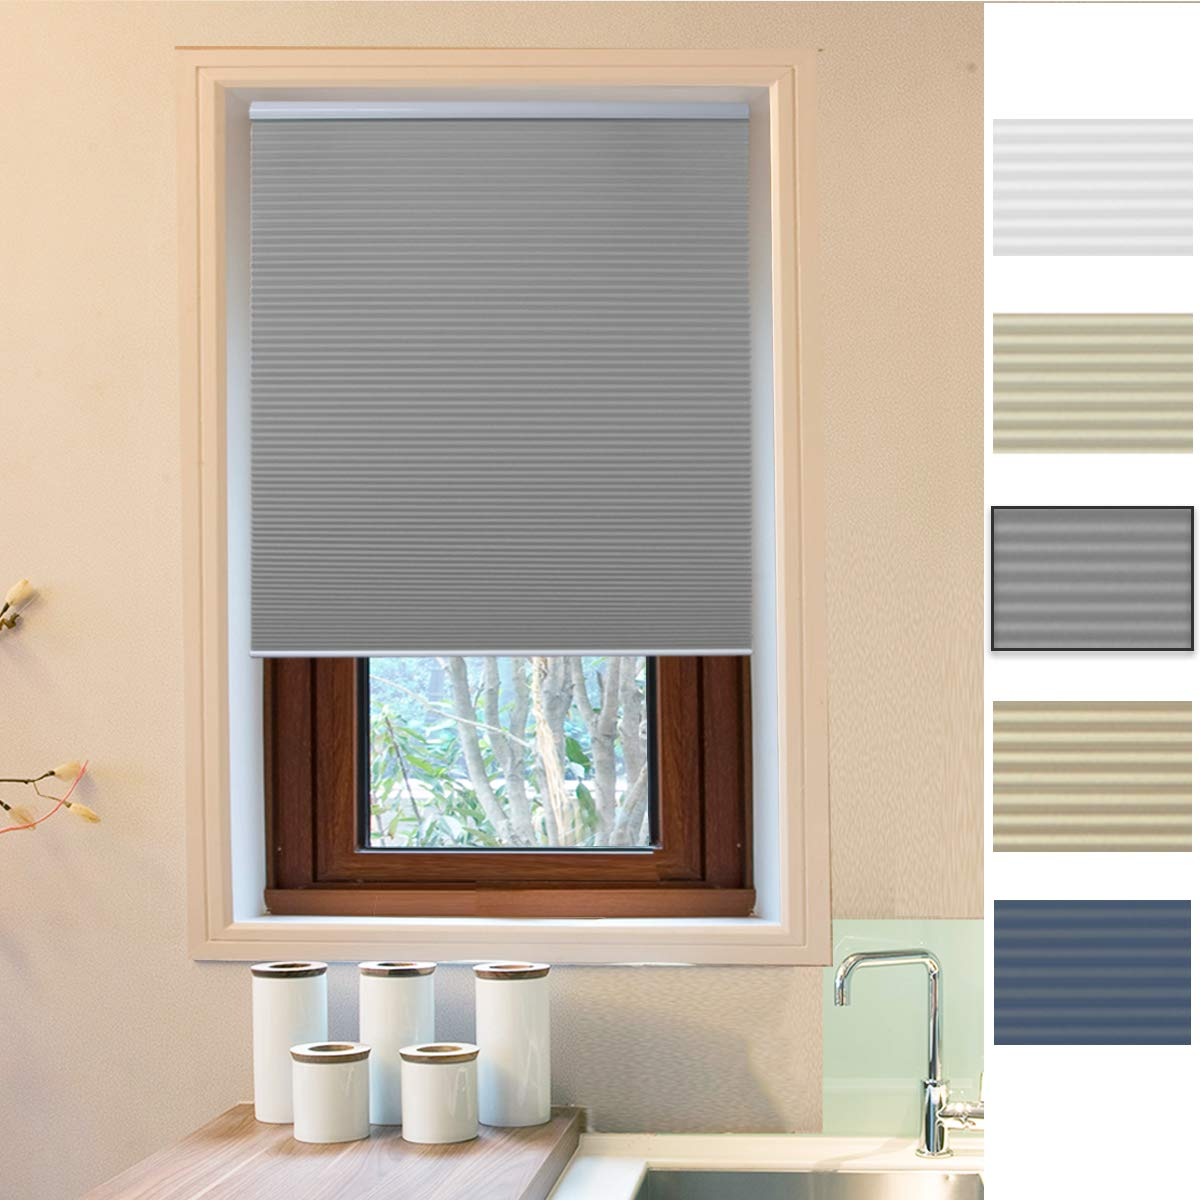 Allesin Cellular Honeycomb Blinds White Dark Gray Blackout 36'' W x 64'' H Single Cell Pleated Shades Cordless Room Darkening Inside & Outside Mount for Windows by Allesin